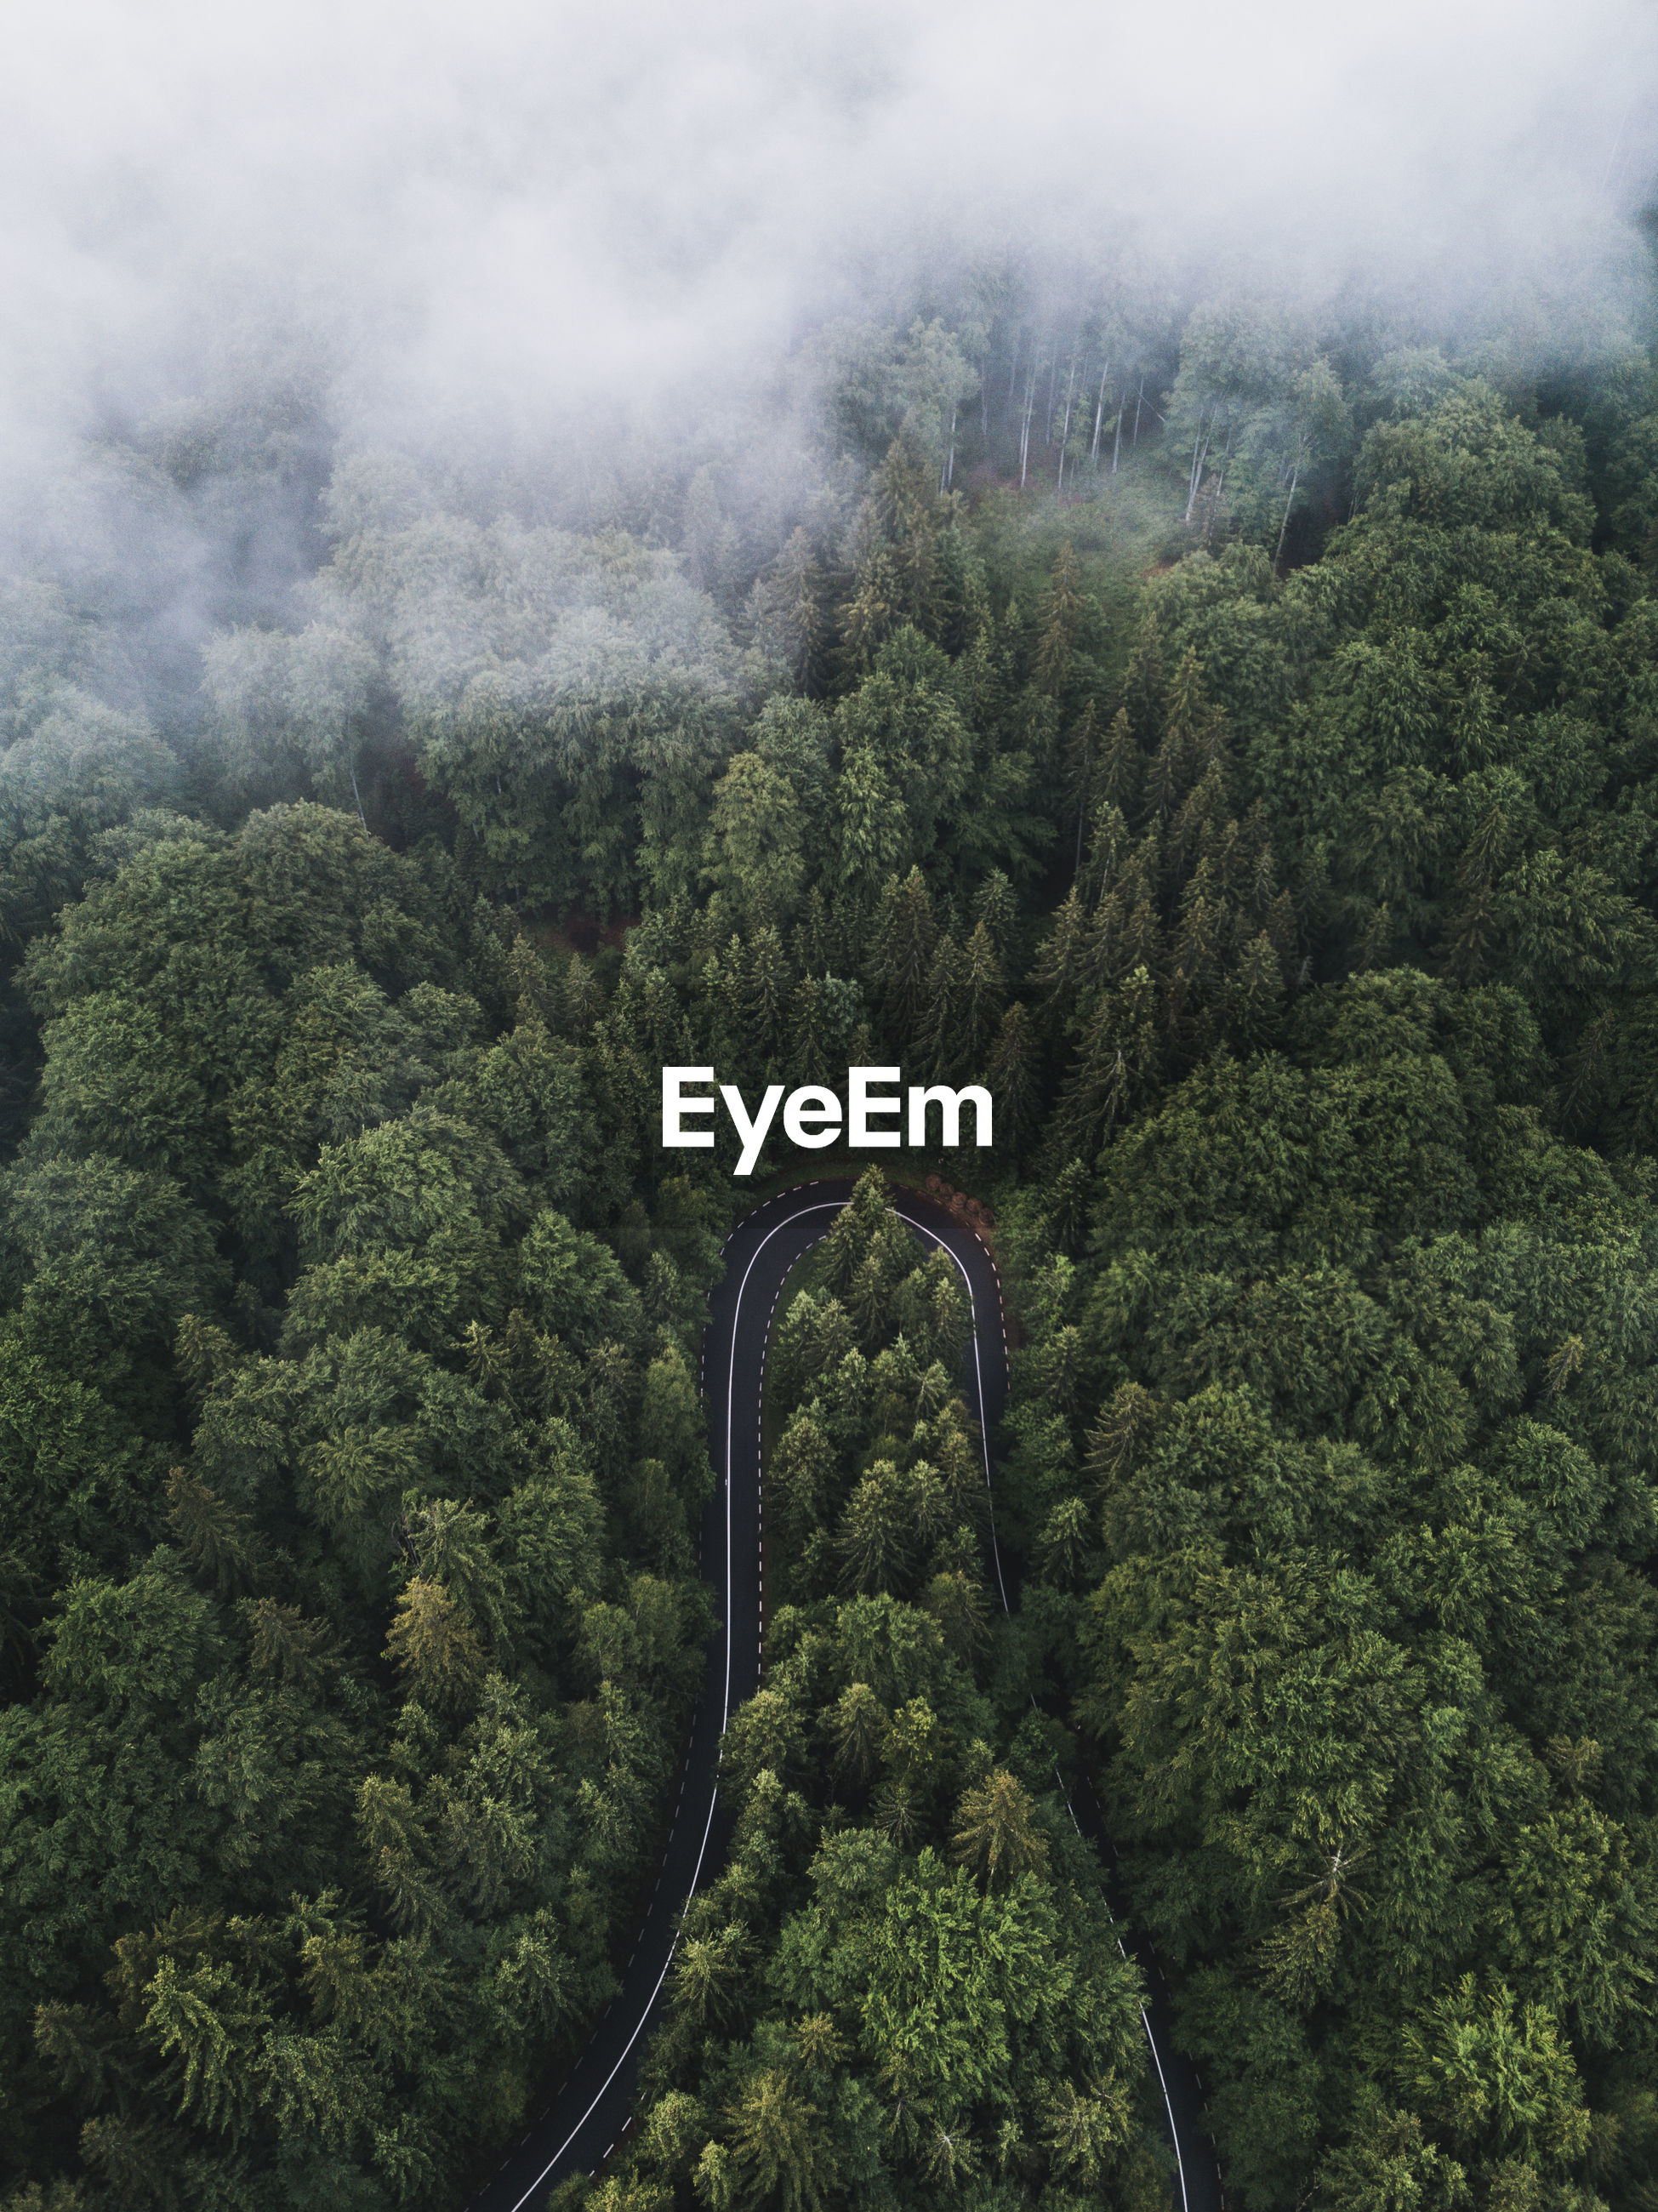 forest, plant, tree, environment, aerial photography, green, nature, scenics - nature, beauty in nature, landscape, rainforest, land, mountain, no people, growth, high angle view, aerial view, natural environment, tranquility, fog, non-urban scene, foliage, cloud, day, lush foliage, tranquil scene, outdoors, sky, jungle, transportation, travel, mountain range, idyllic, vegetation